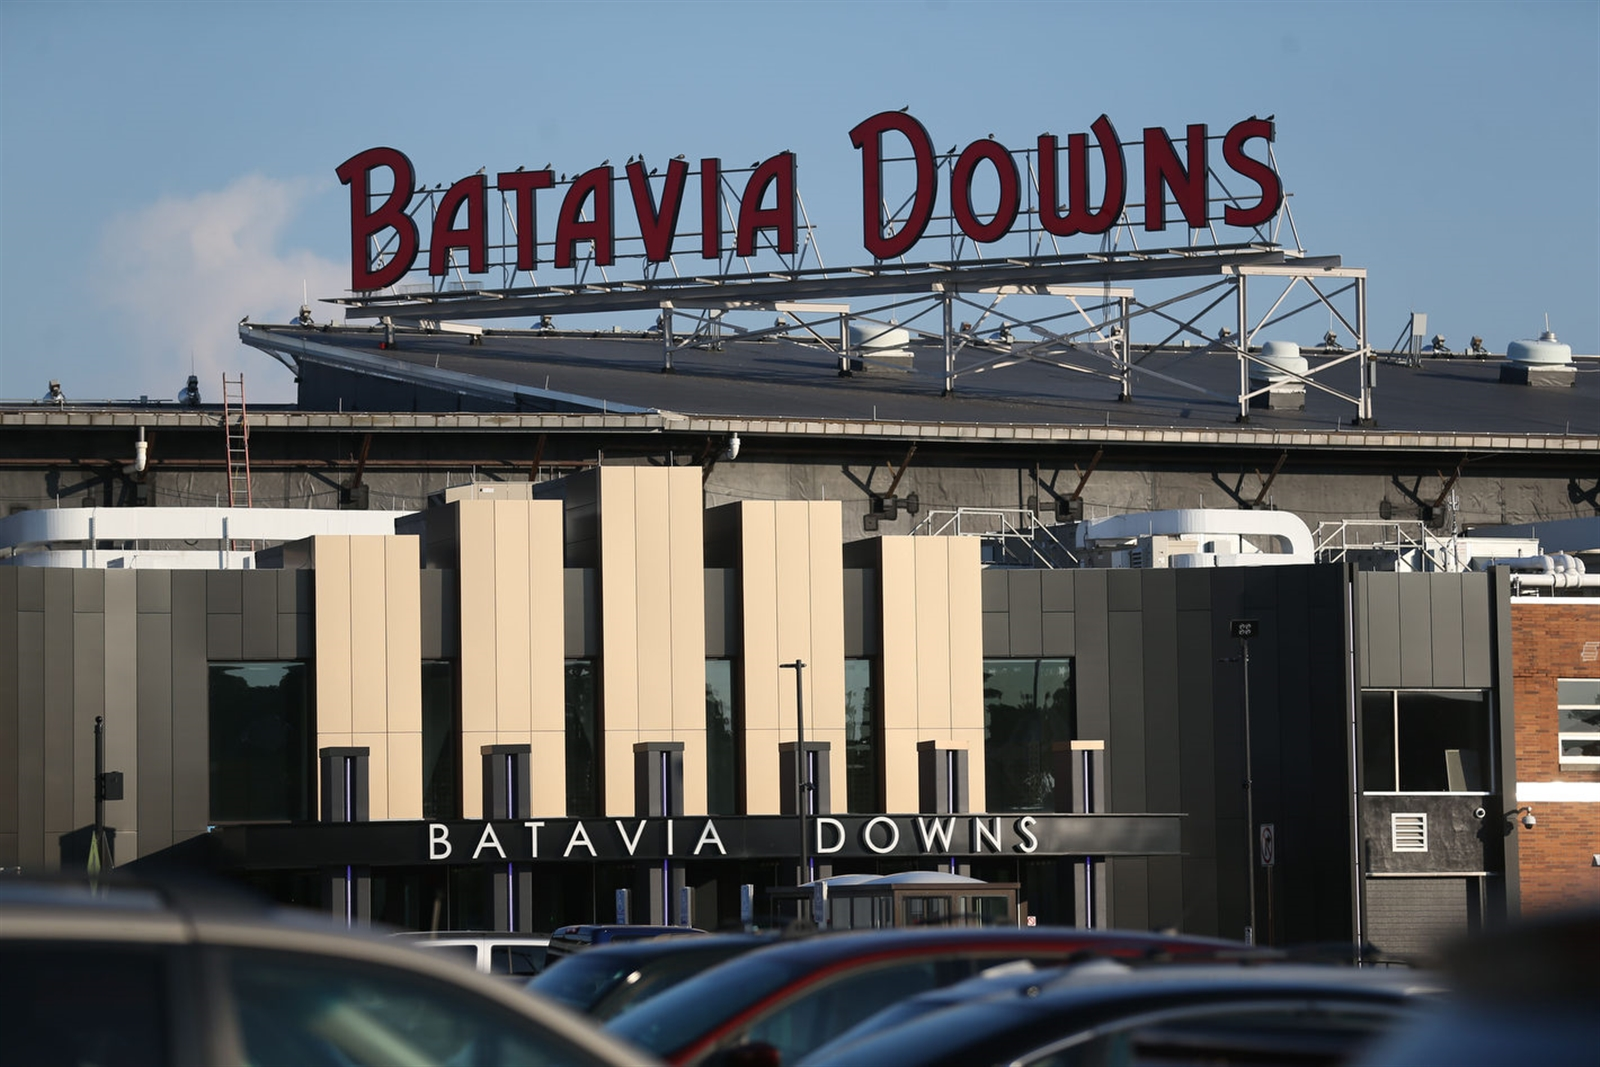 Crowds come out for a Wednesday night of horse racing at Batavia Downs, the oldest lighted harness track in the US.